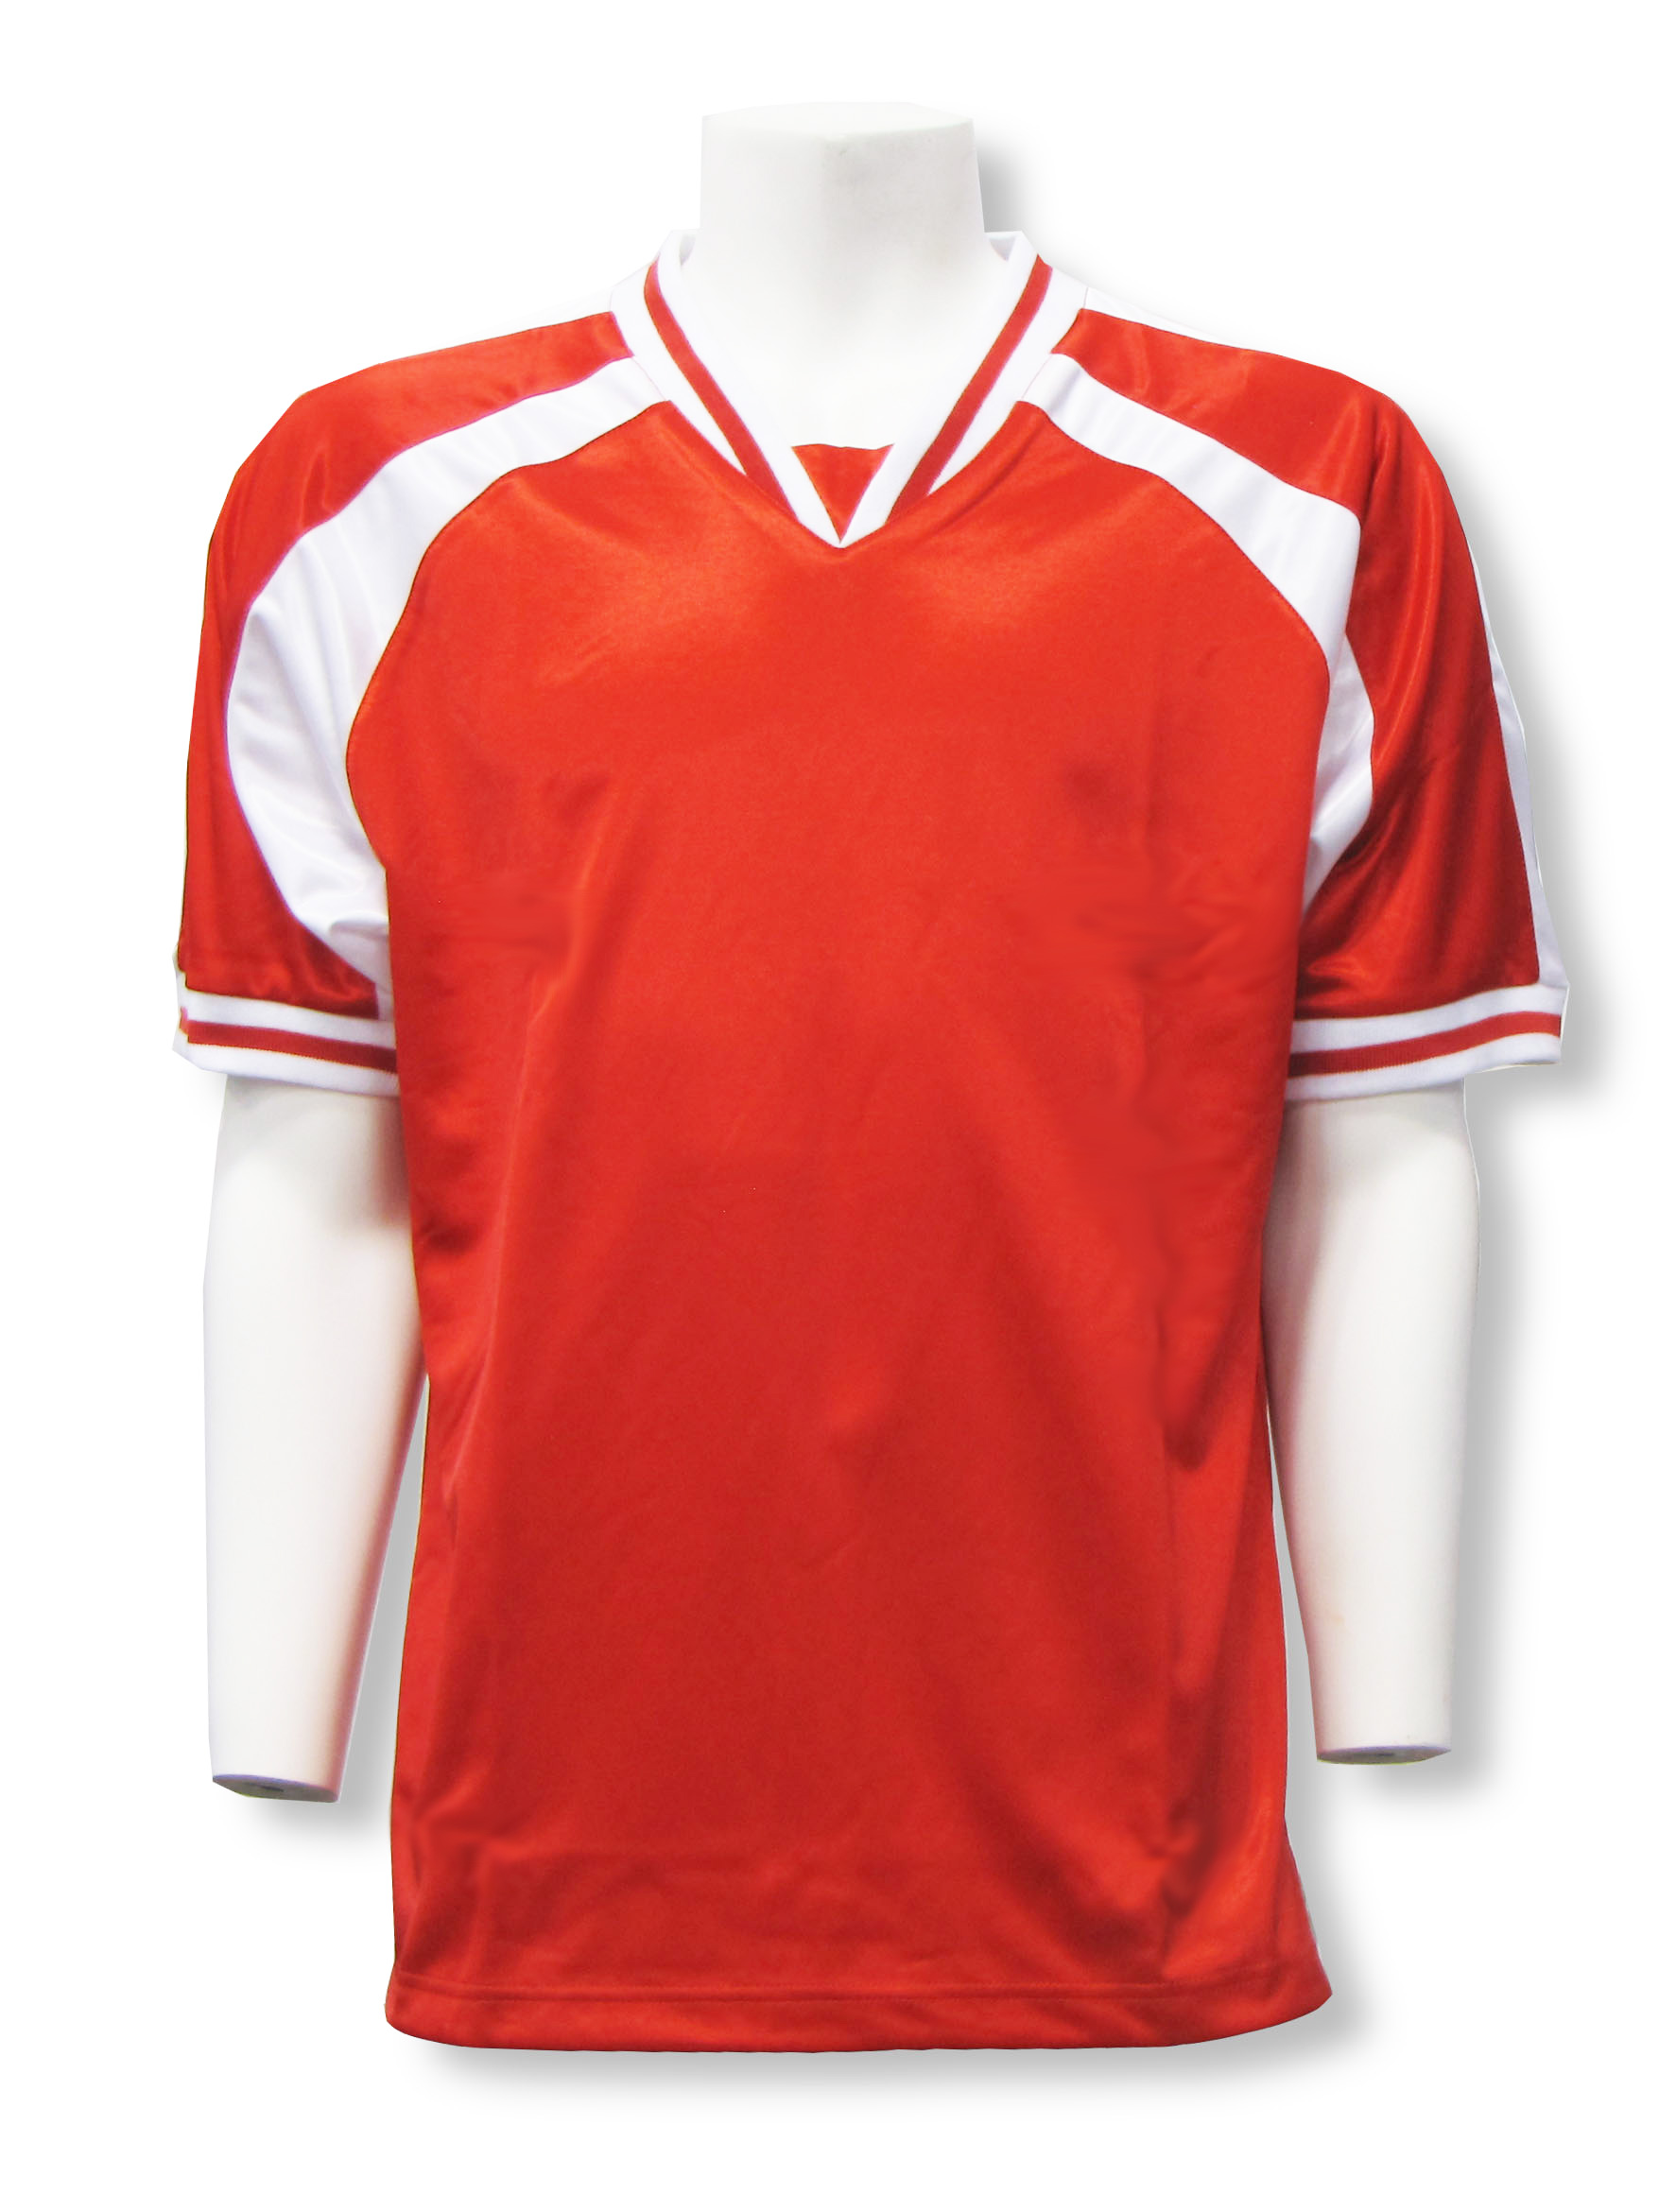 Spitfire soccer jersey in red/white by Code Four Athletics